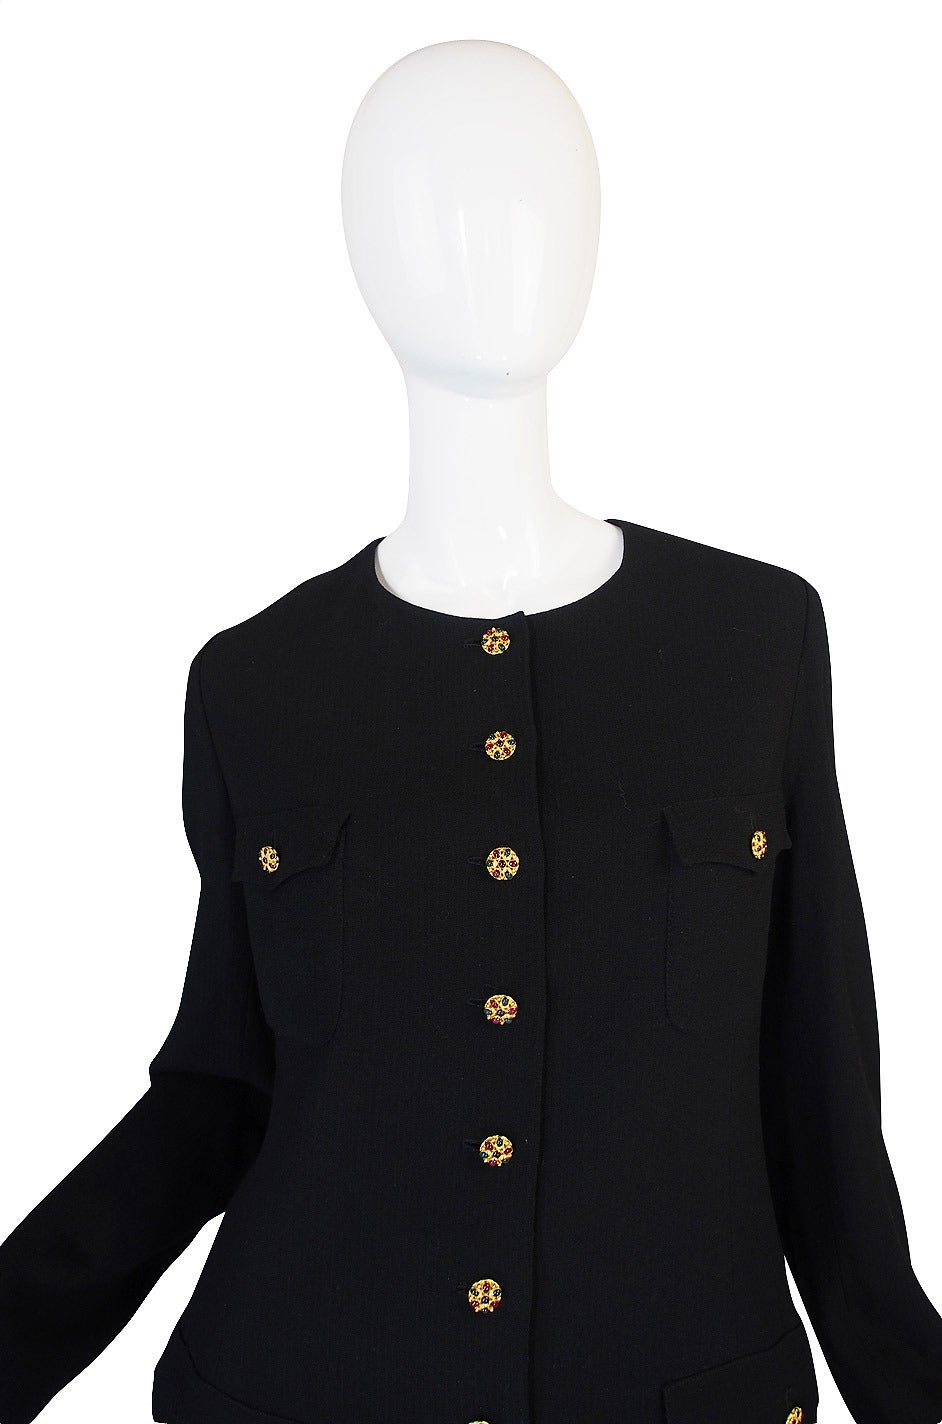 96A Runway Chanel Coat Dress w Cabochon Buttons 4